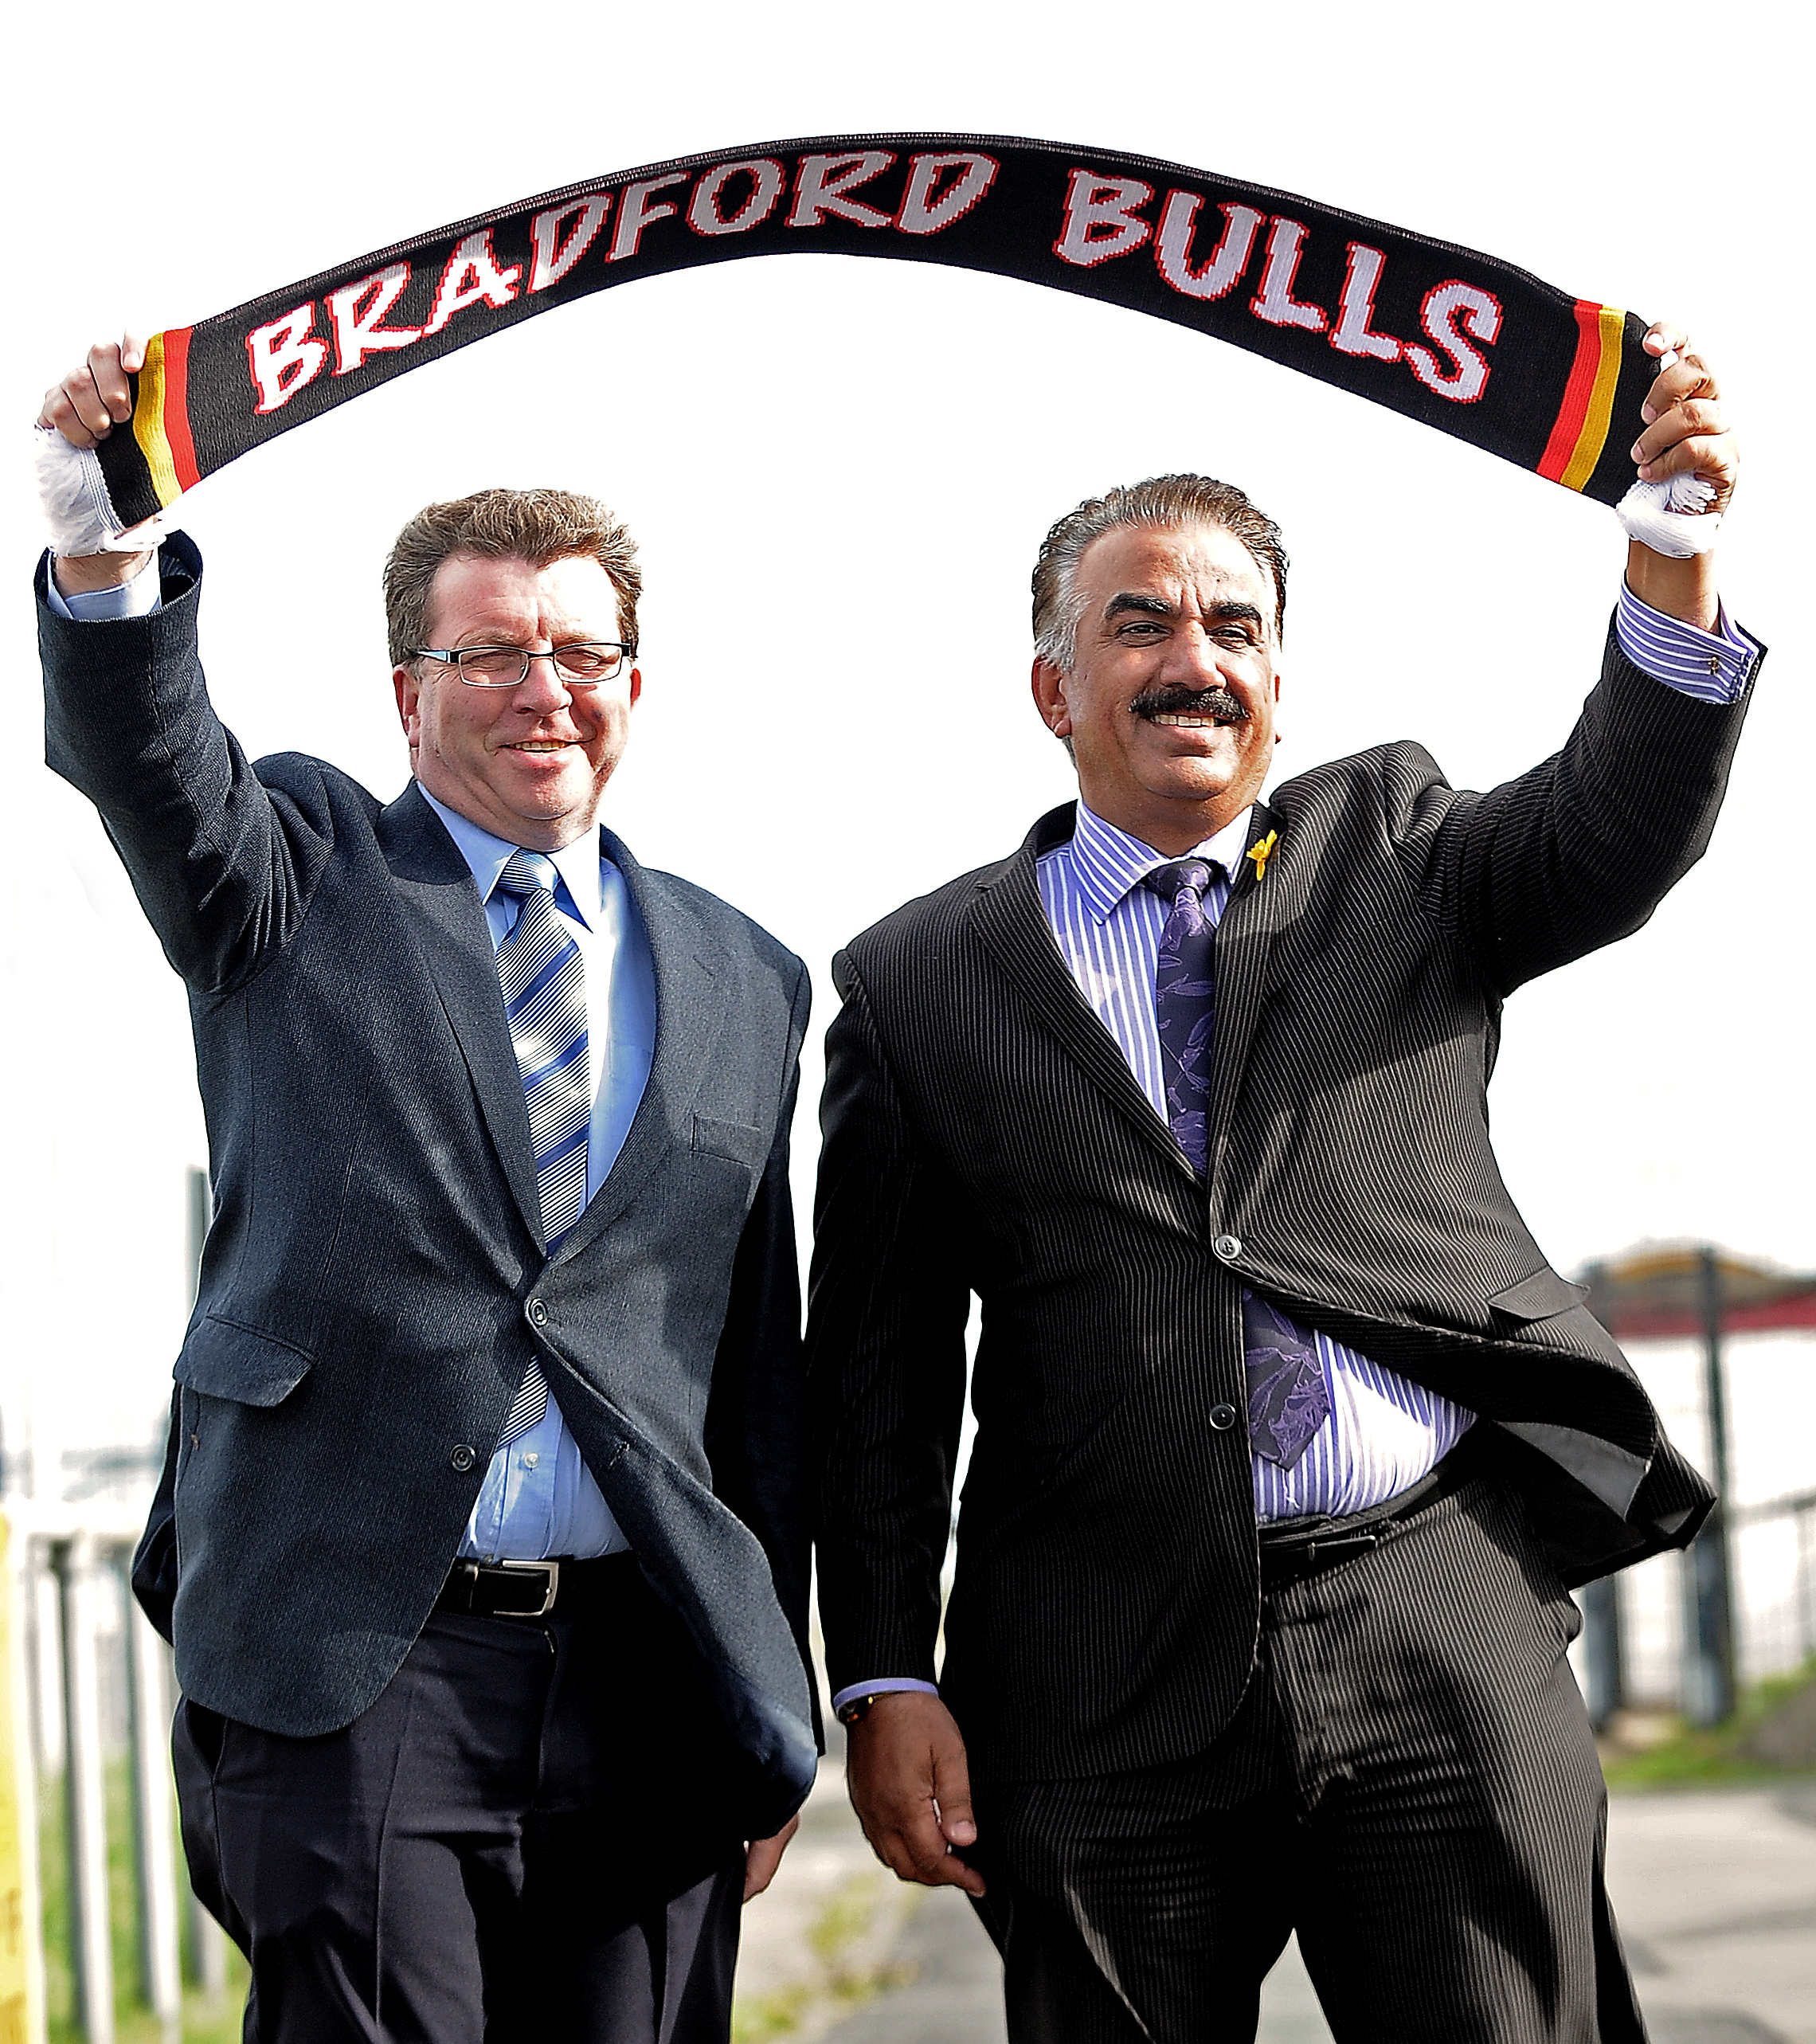 Omar Khan, pictured with co-chairman Gerry Sutcliffe MP, saved the club from oblivion when he took over a year ago